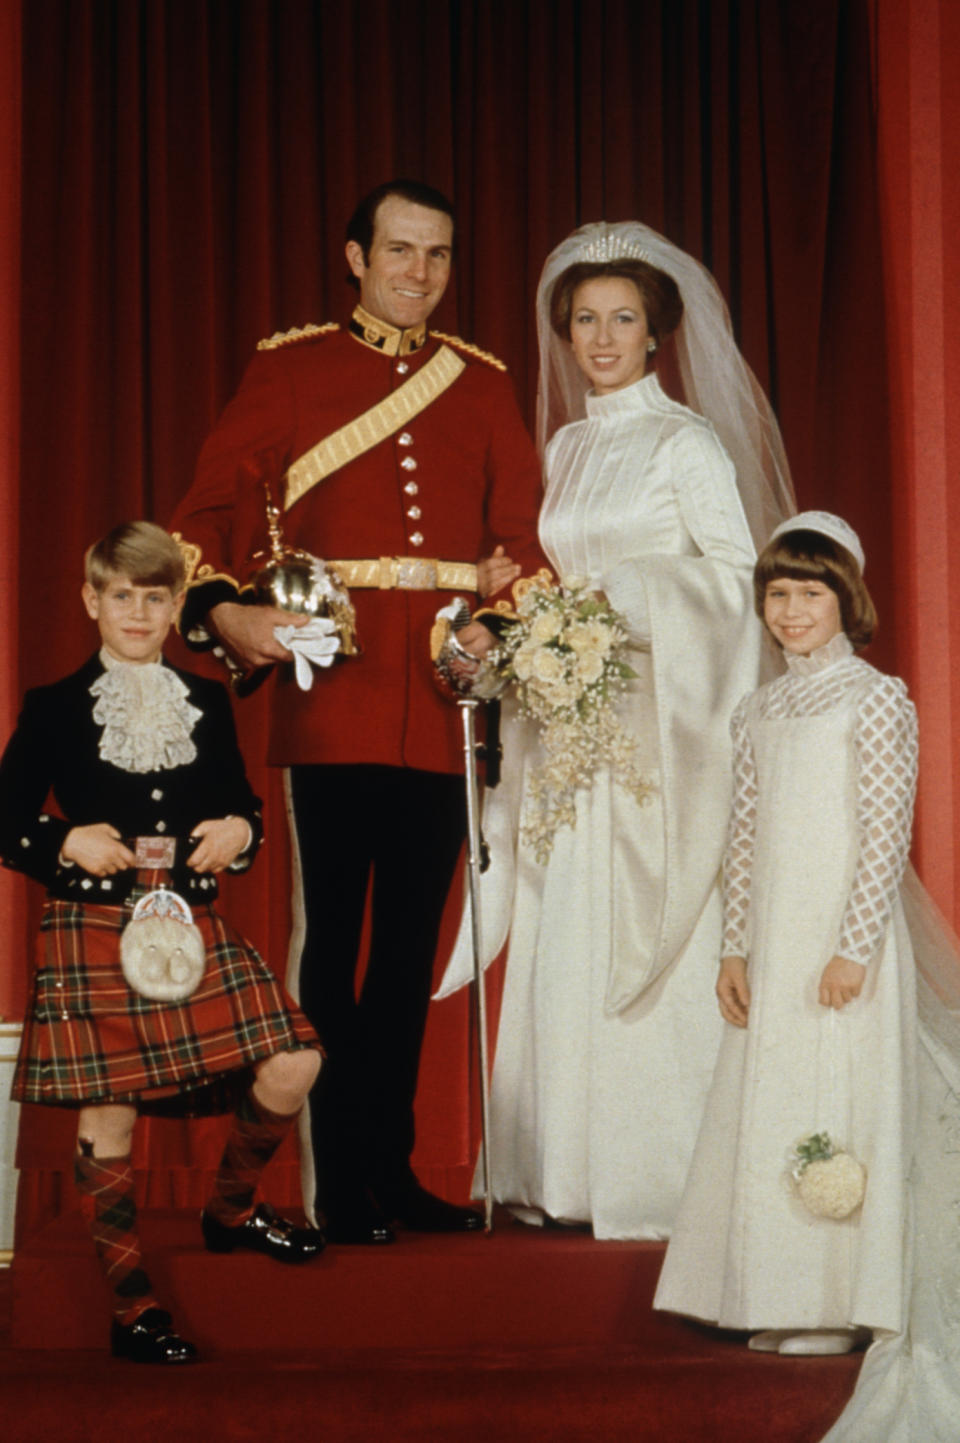 Princess Anne on her wedding day with her husband Mark Phillips, her younger brother Prince Edward, and cousin Lady Sarah Armstrong-Jones. (Photo by © Hulton-Deutsch Collection/CORBIS/Corbis via Getty Images)